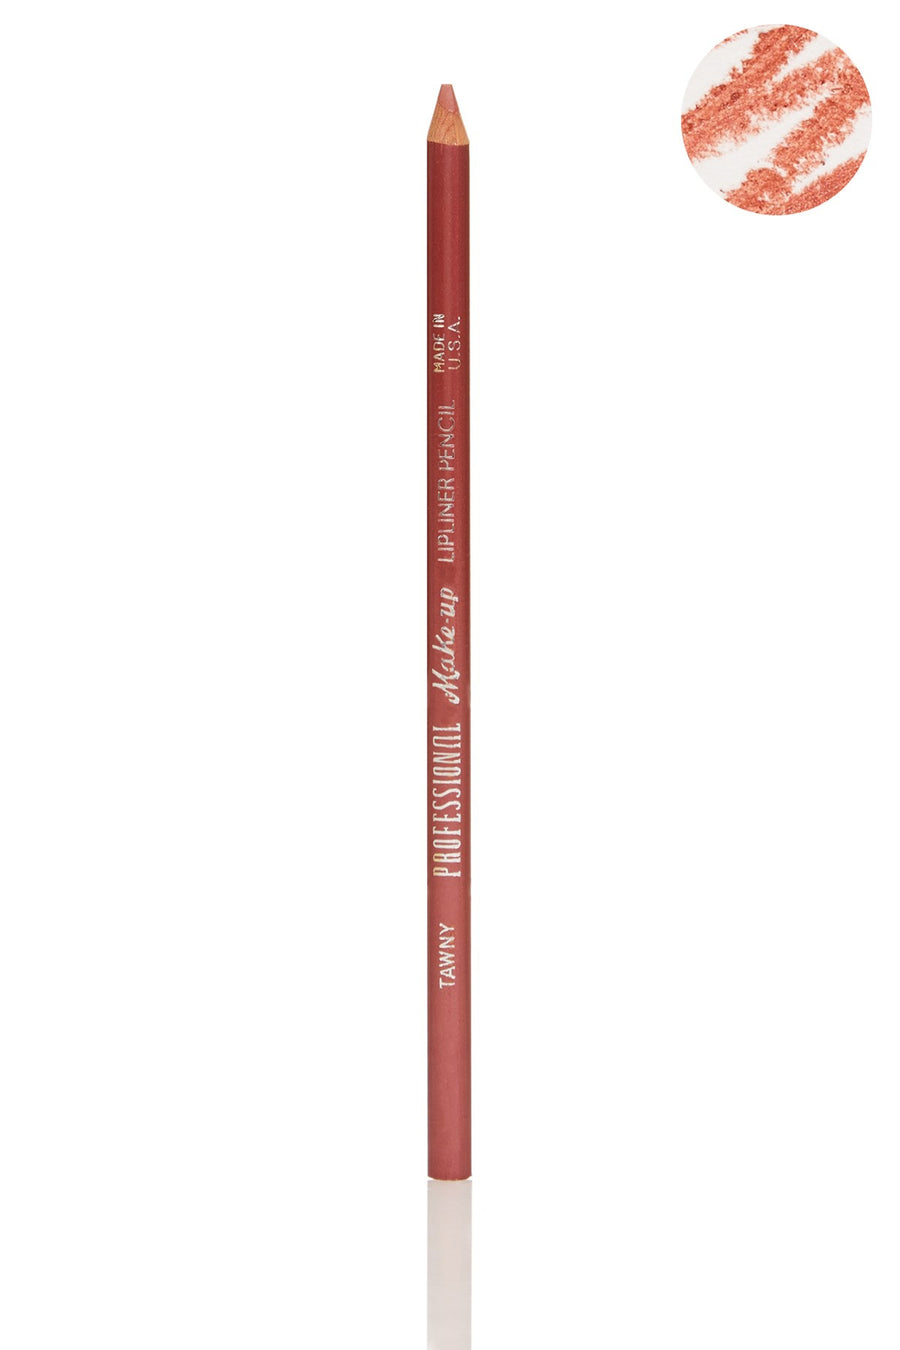 Tawny Lipliner Pencil - Blend Mineral Cosmetics